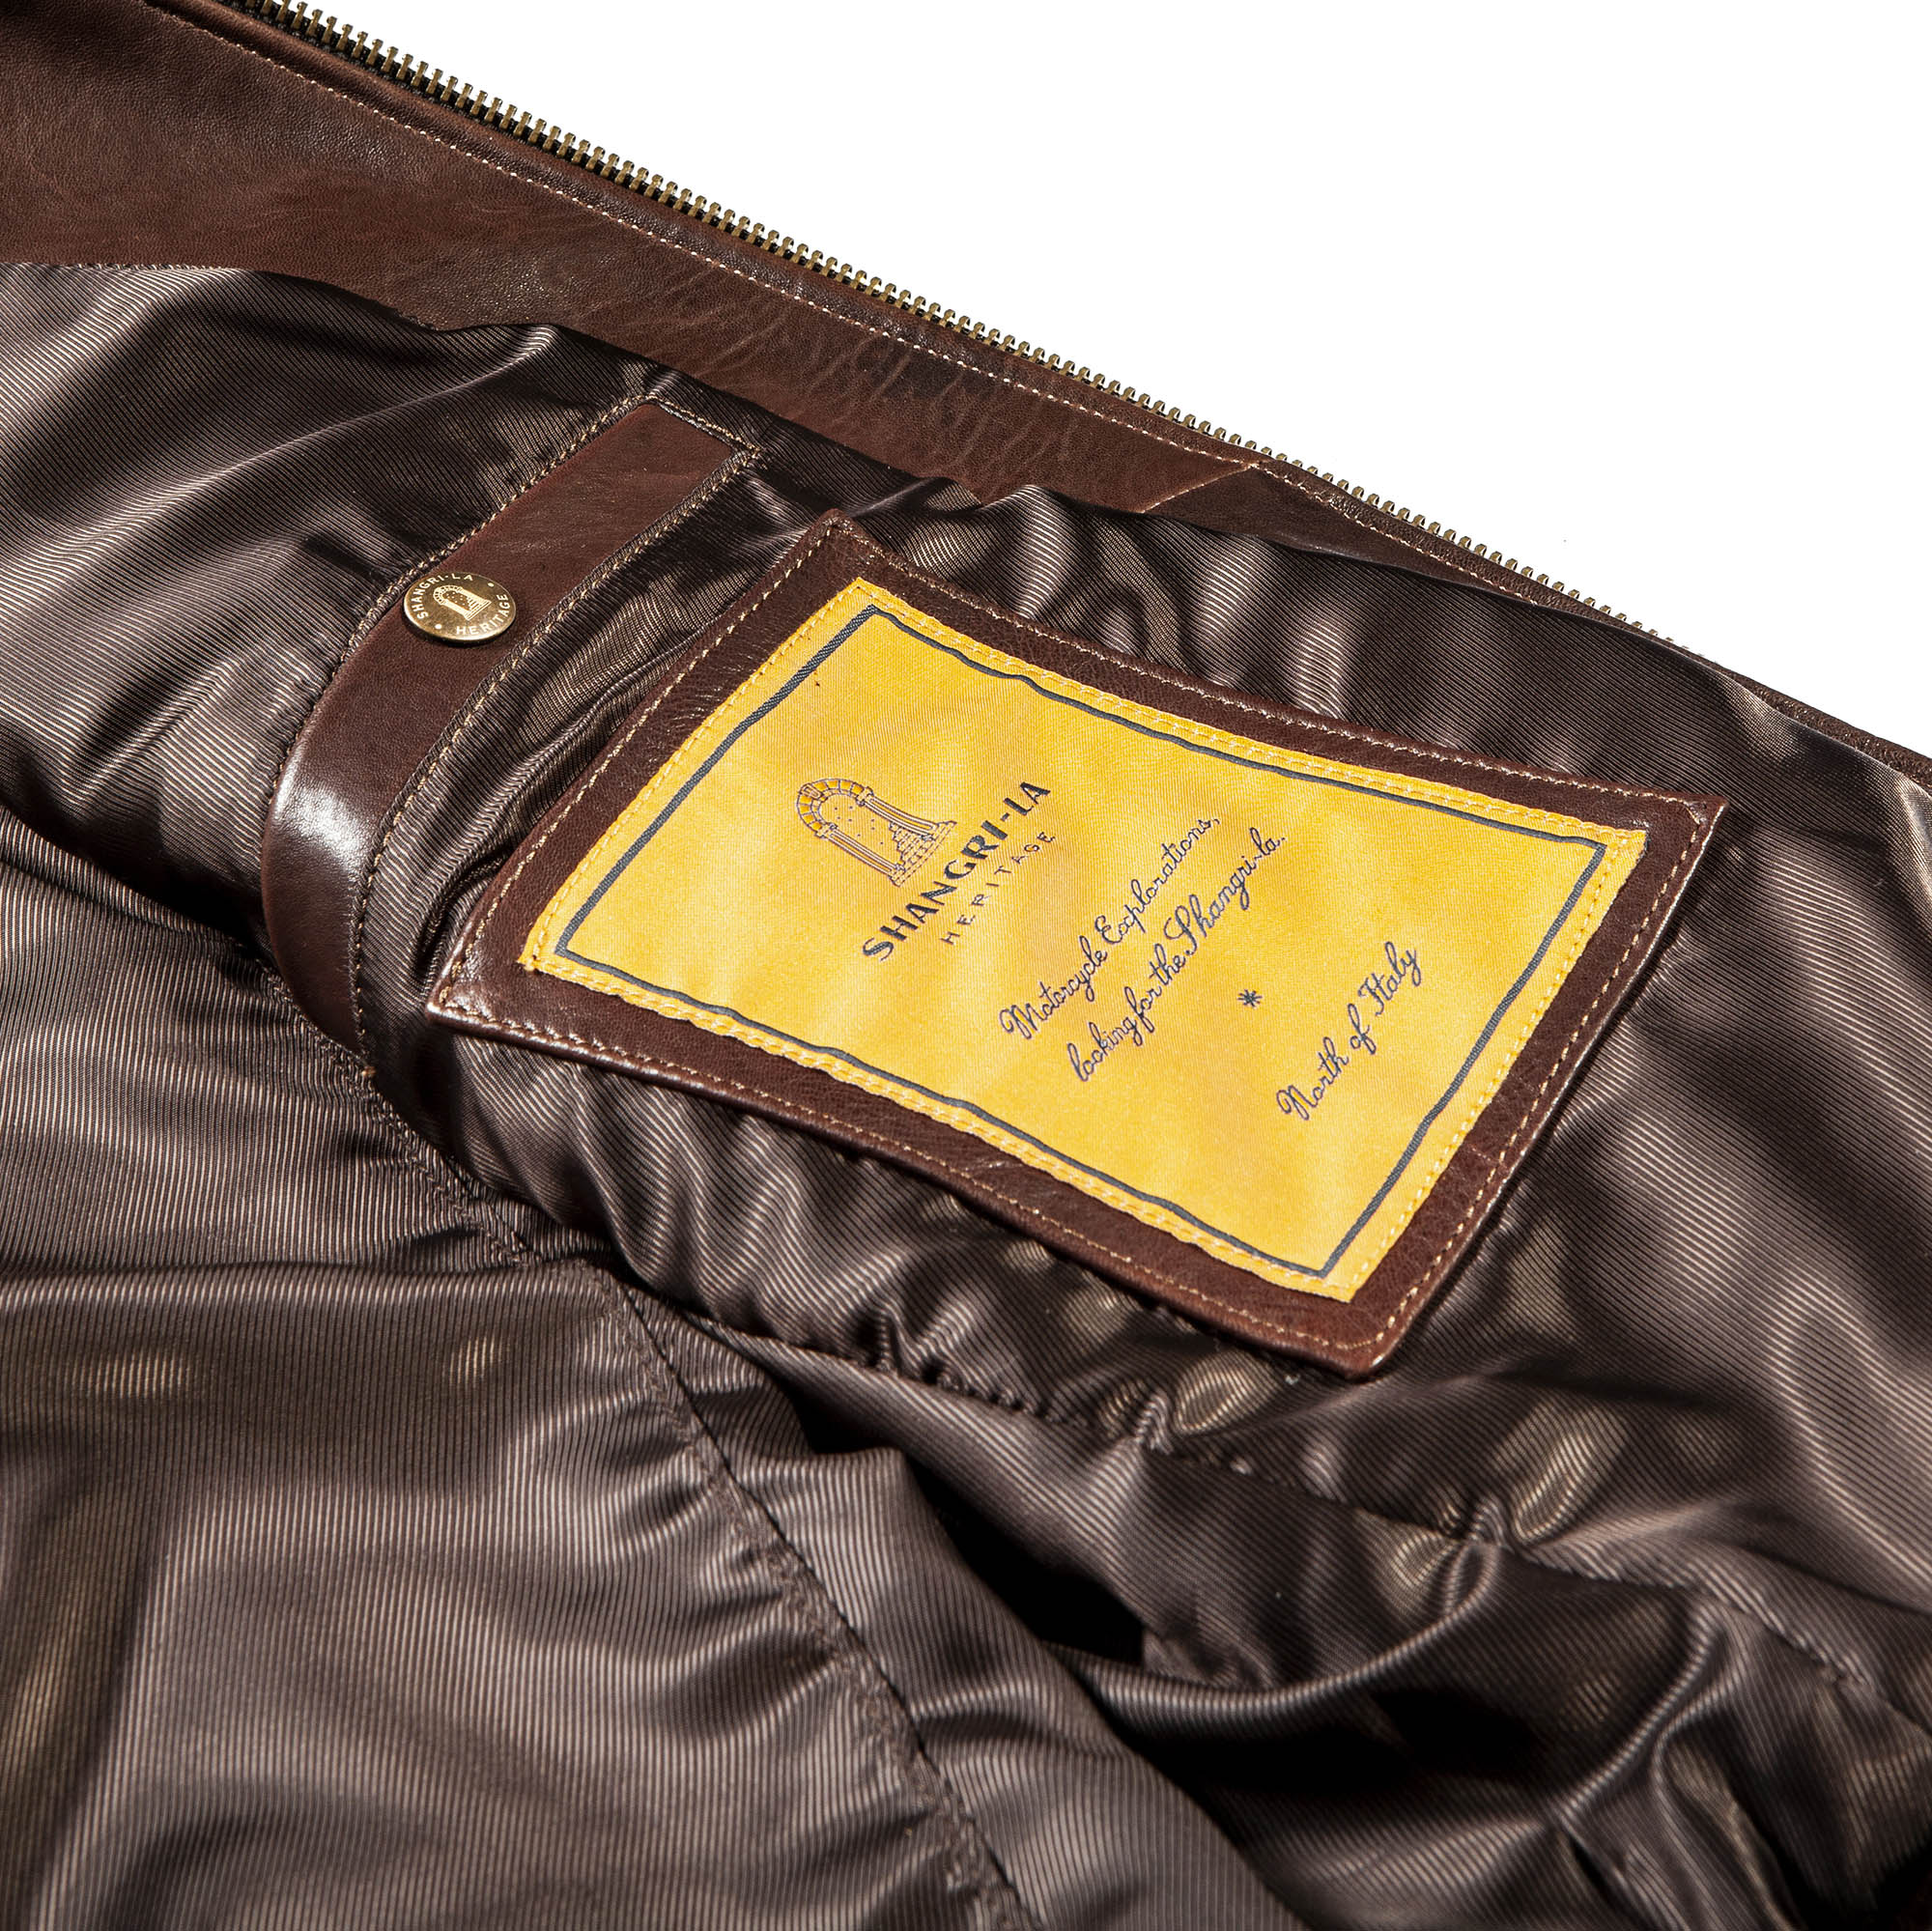 shangri-la-heritage-cafe-racer-brown-lambskin-jacket-still-life-pocket-label